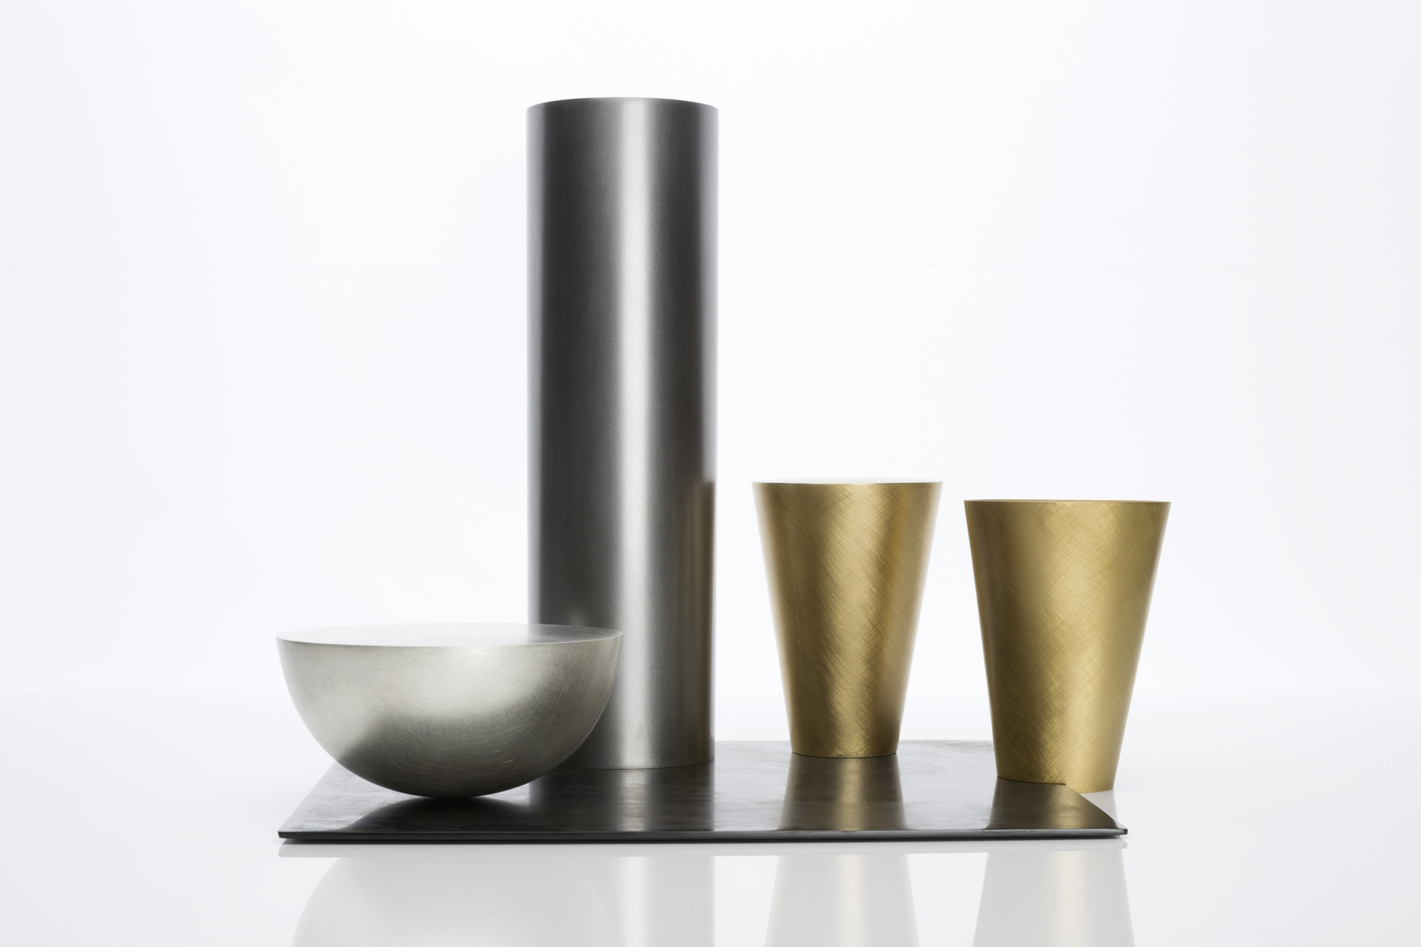 Juliette_Bigley_Bowl_with_Vessels_Mixed_Metals_2018_3.JPG